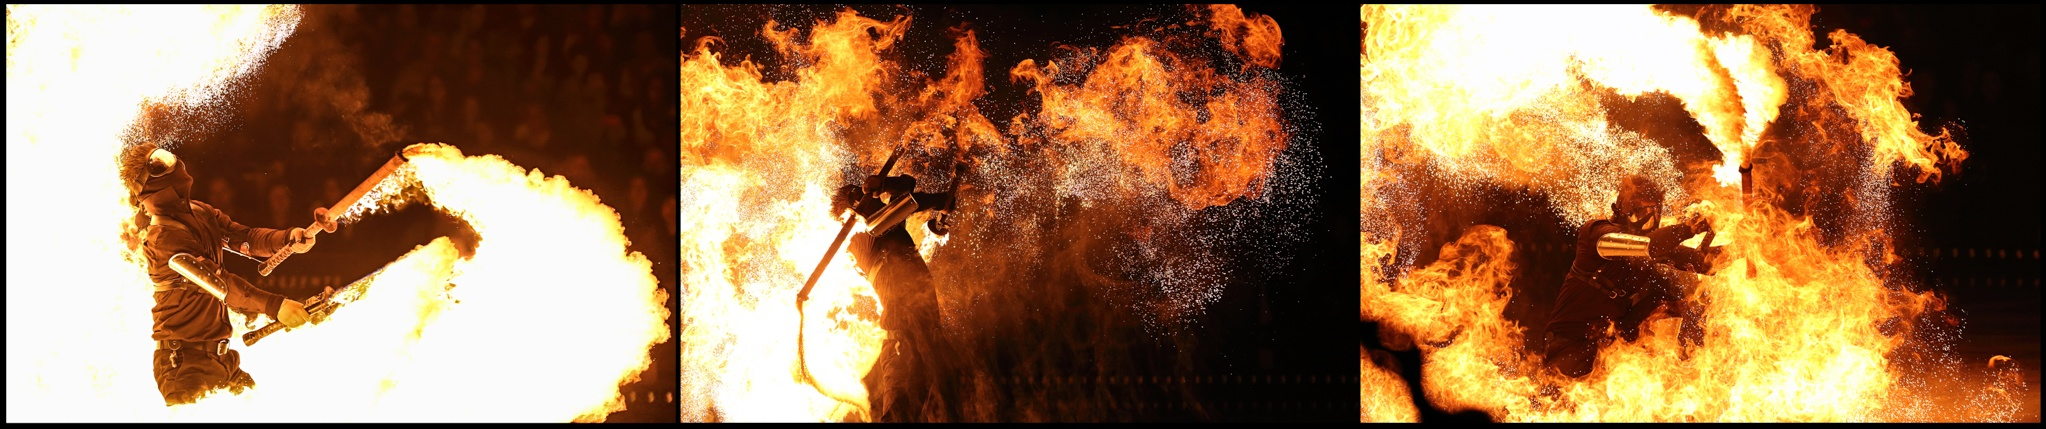 Spark Fire Dance - Firebreathing swords AOI 2014 tour